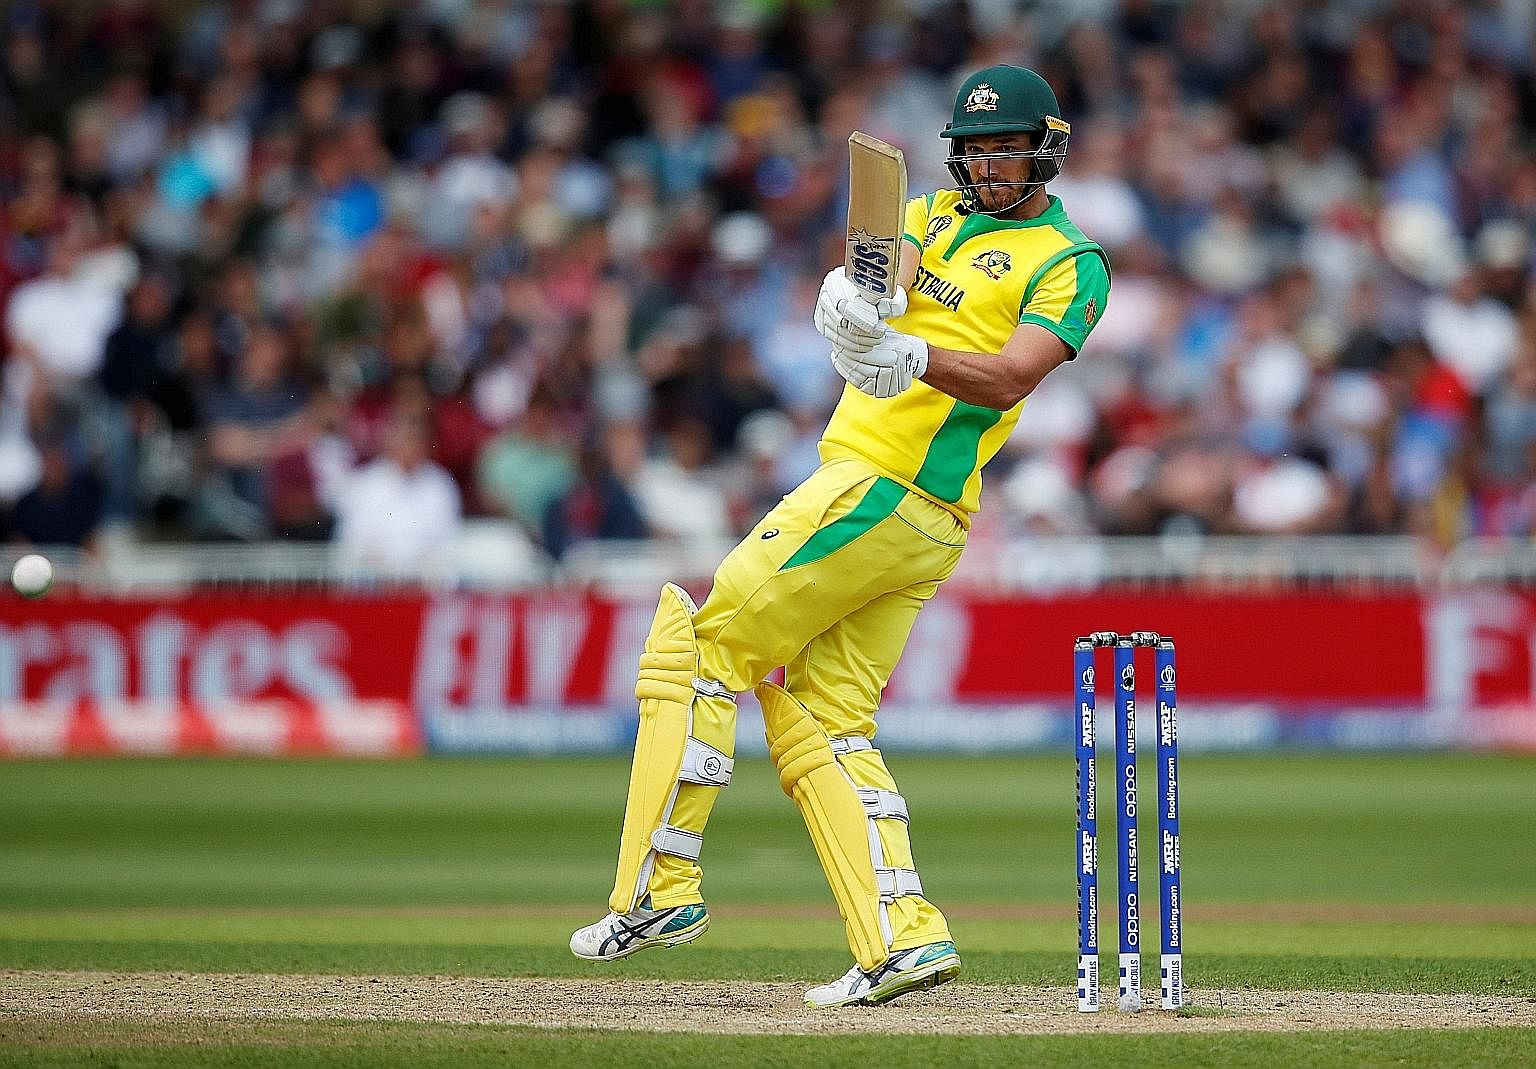 Australian No. 8 Nathan Coulter-Nile's 92 was way above his ODI average of 12, with a match high of 34.